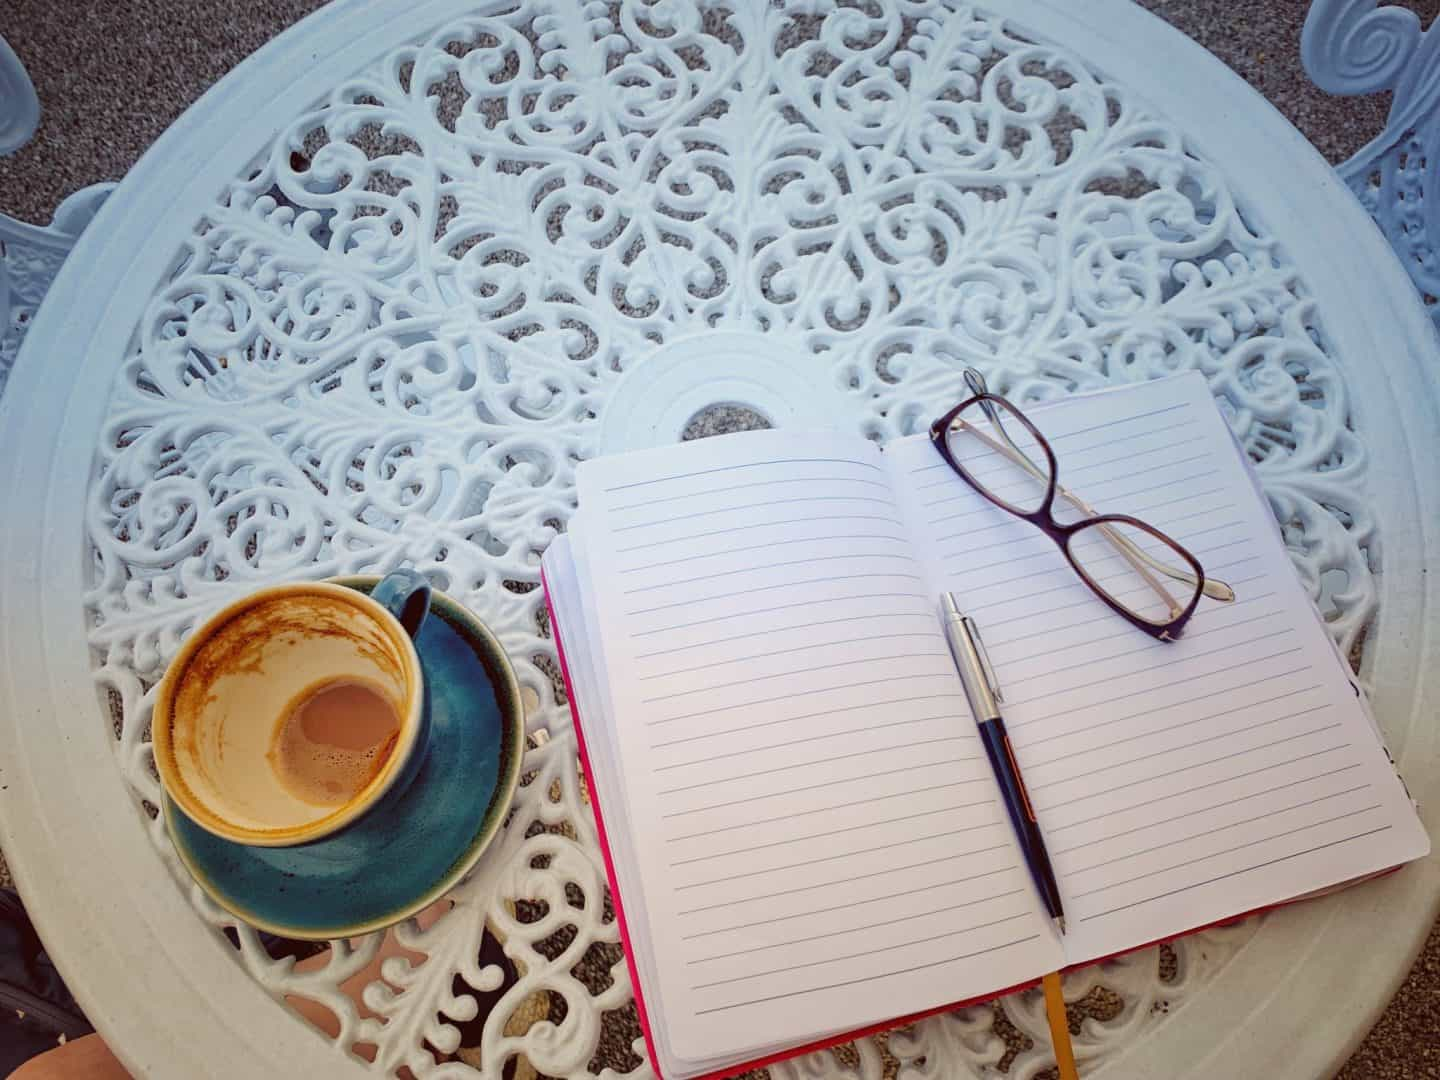 Self-Care Series, Part 2: The Power of Daily Habits